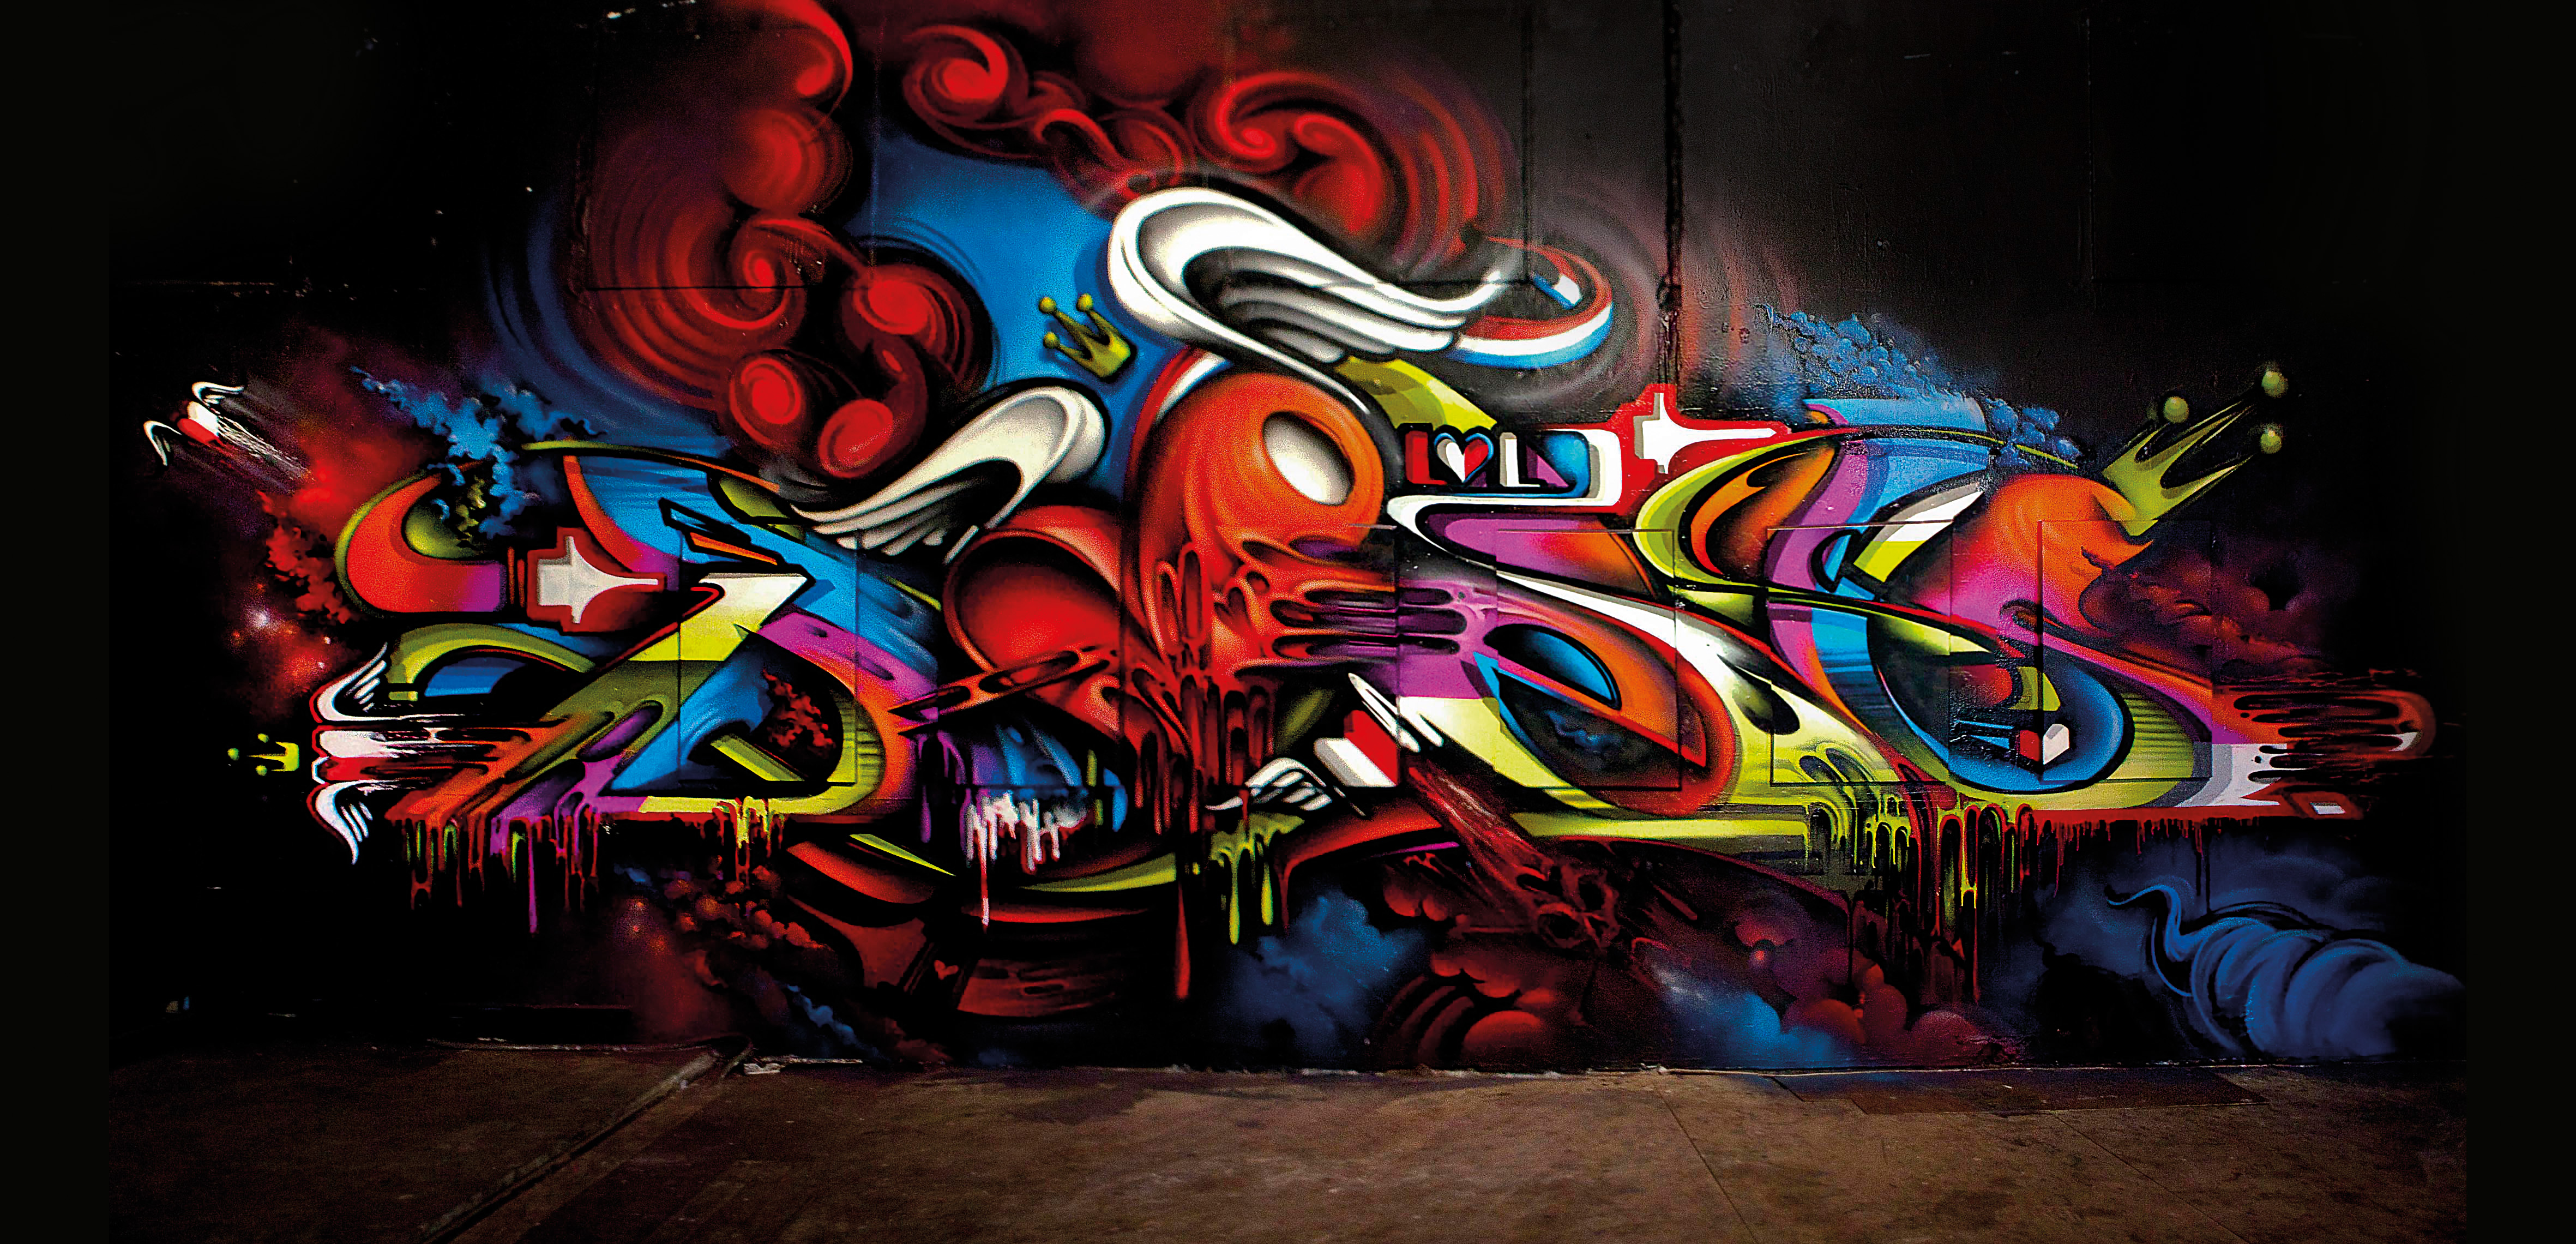 A work by Does - Sydney australia i love letters exhibition canvas mural lofi